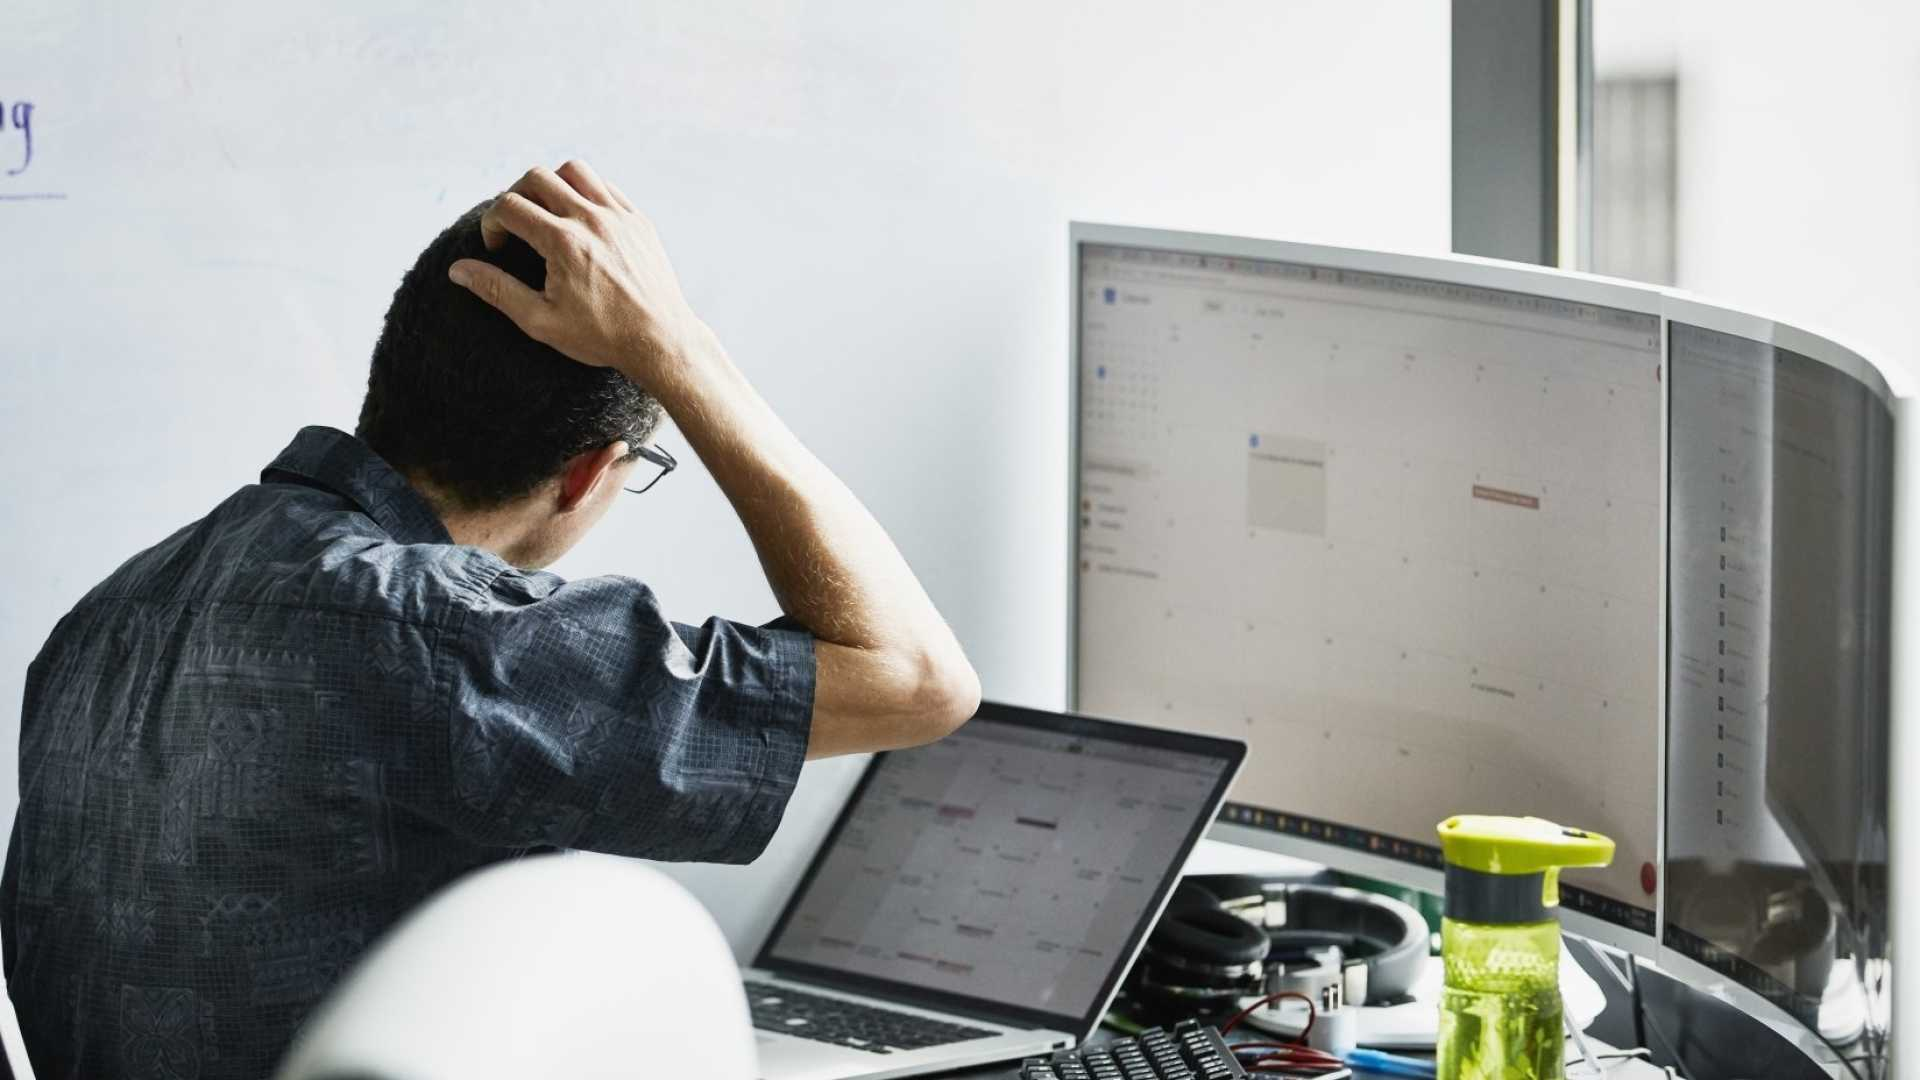 5 Must-Do Actions to Keep Your Startup Going